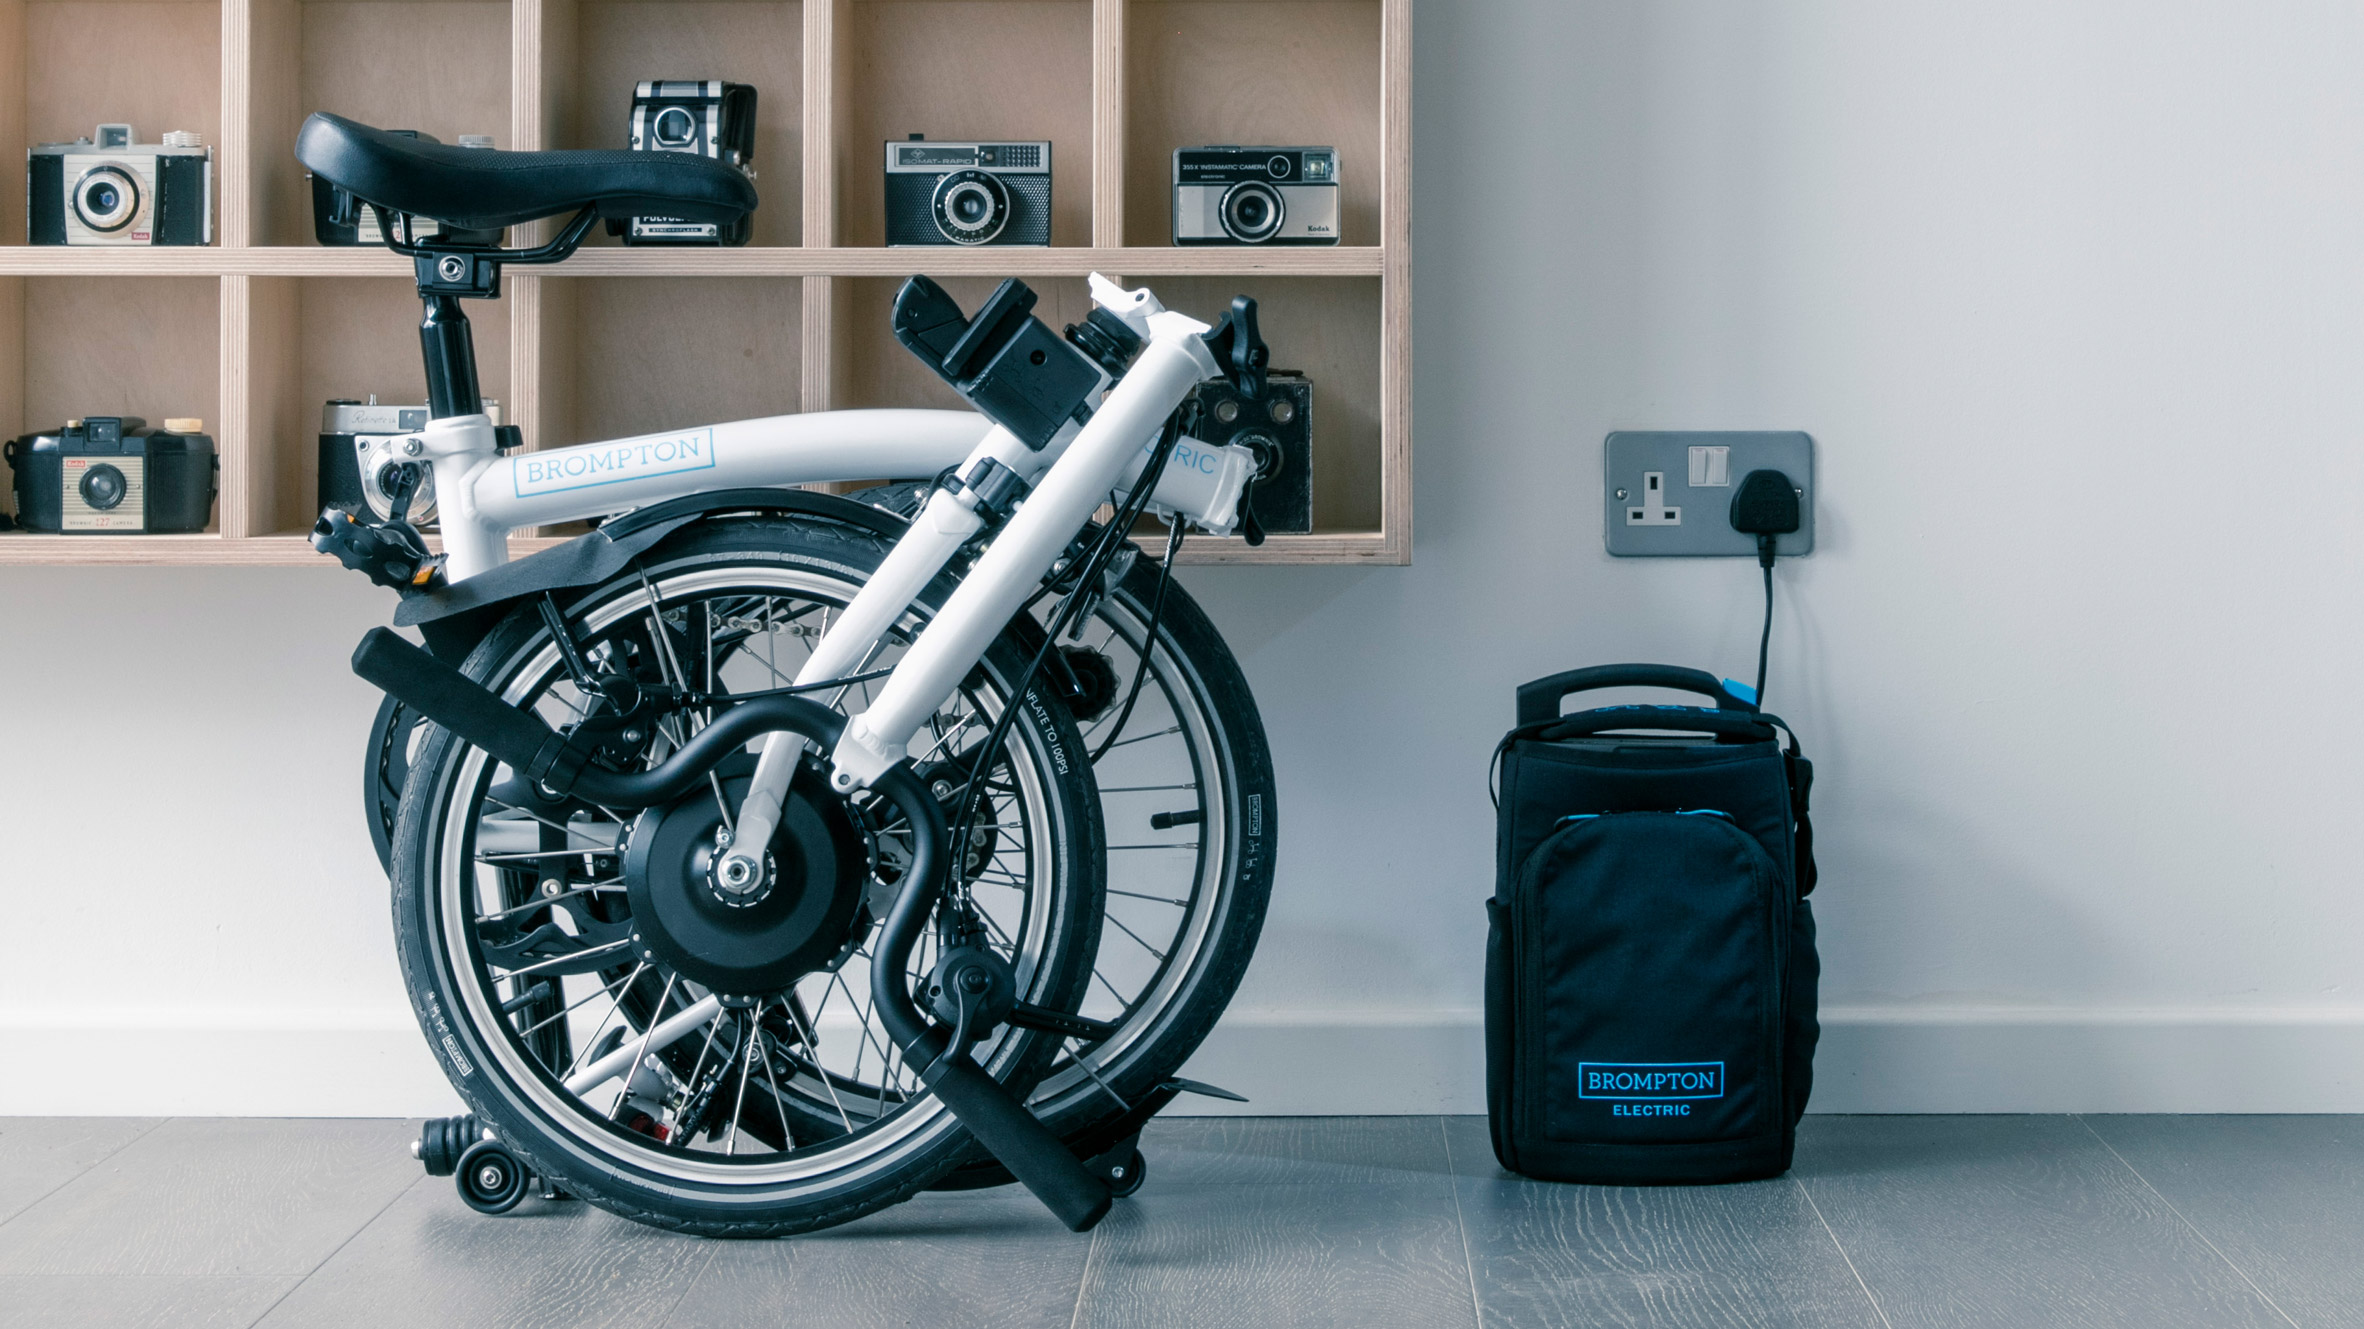 Brompton Bikes Brompton Launches First Battery Powered Version Of Its Folding Bike